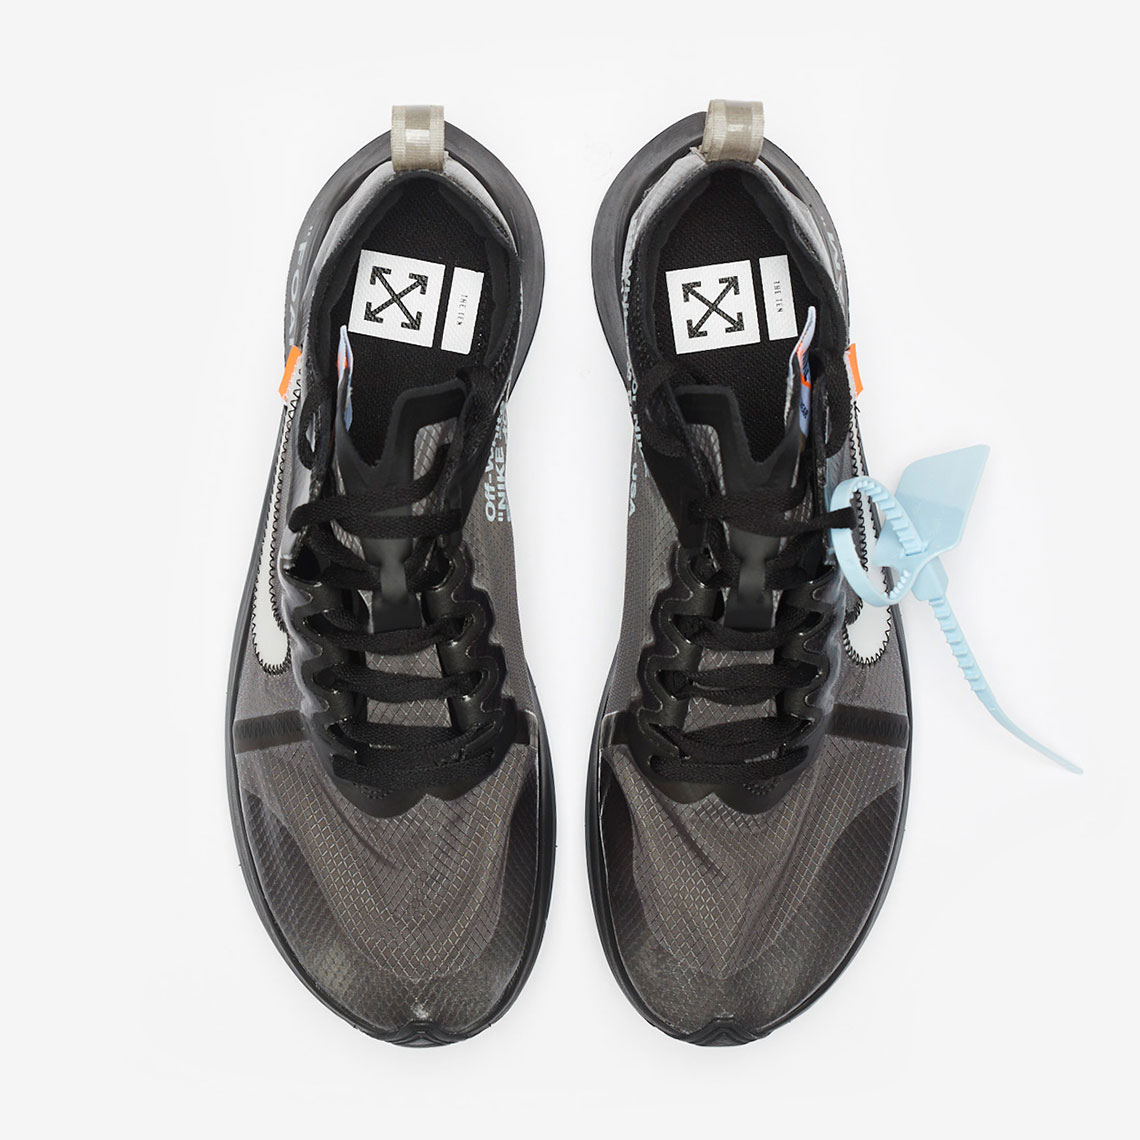 bdc73f466b76a Where To Buy Off White Nike Zoom Fly Black White Cone